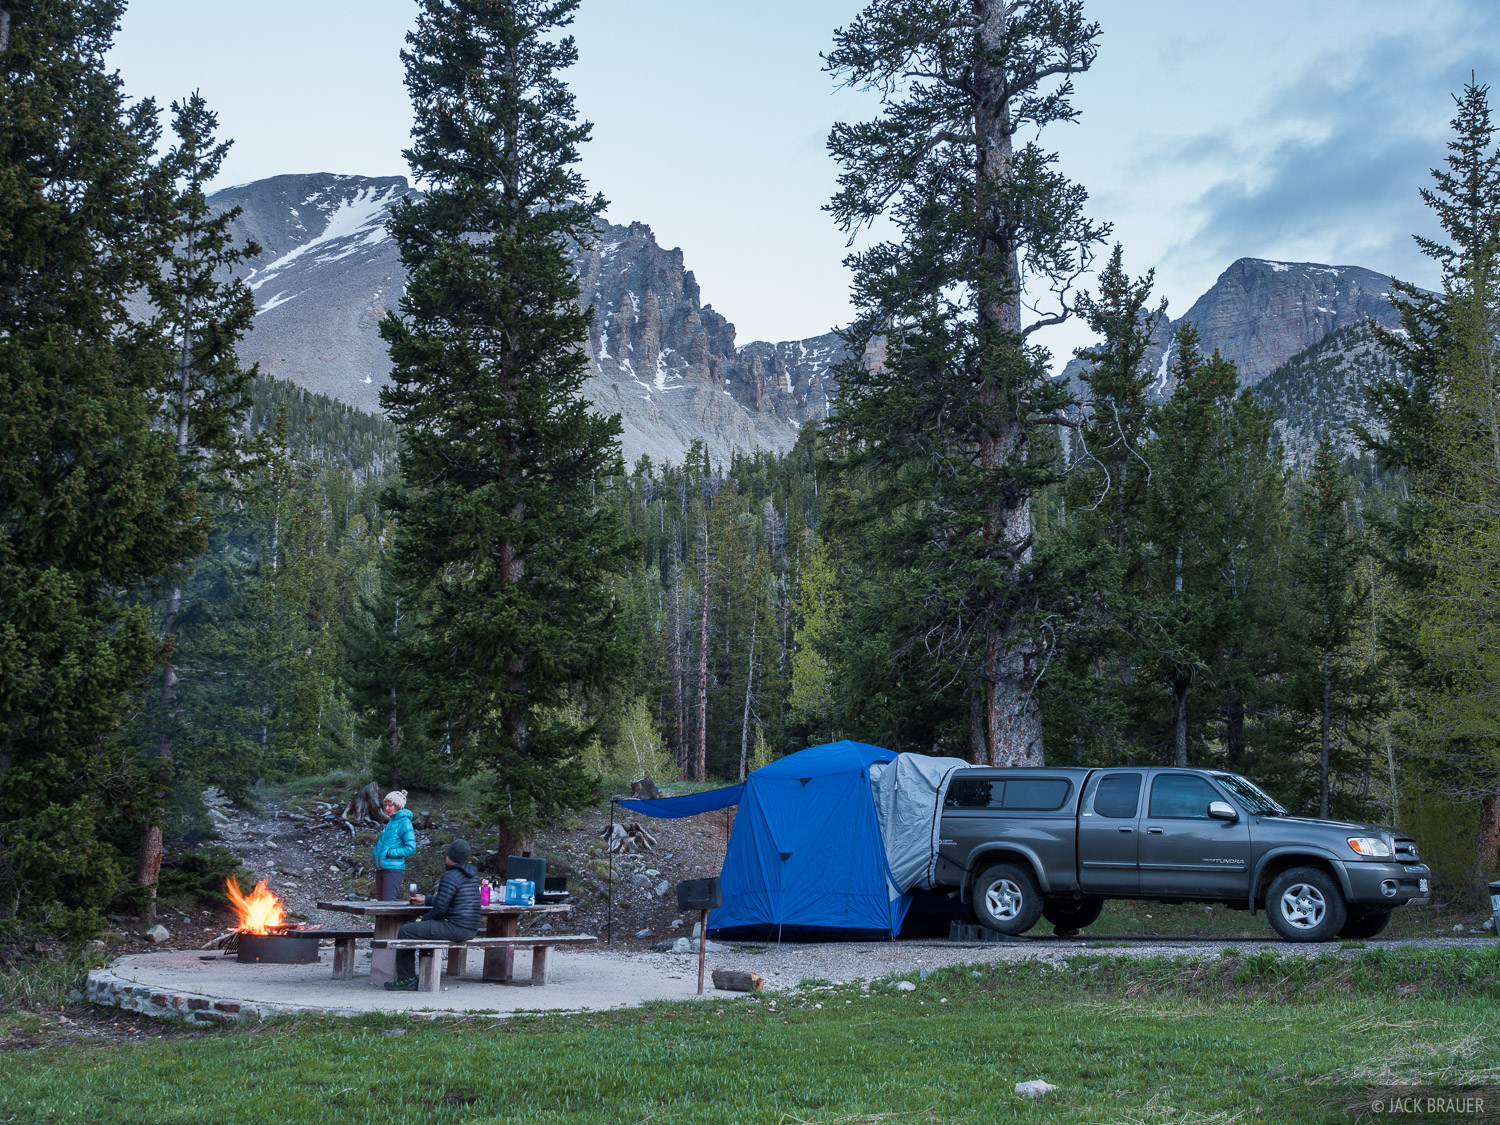 Another night at Wheeler Peak Campground. For this road trip I bought a Napier SUV tent, a car camping tent that has a unique...